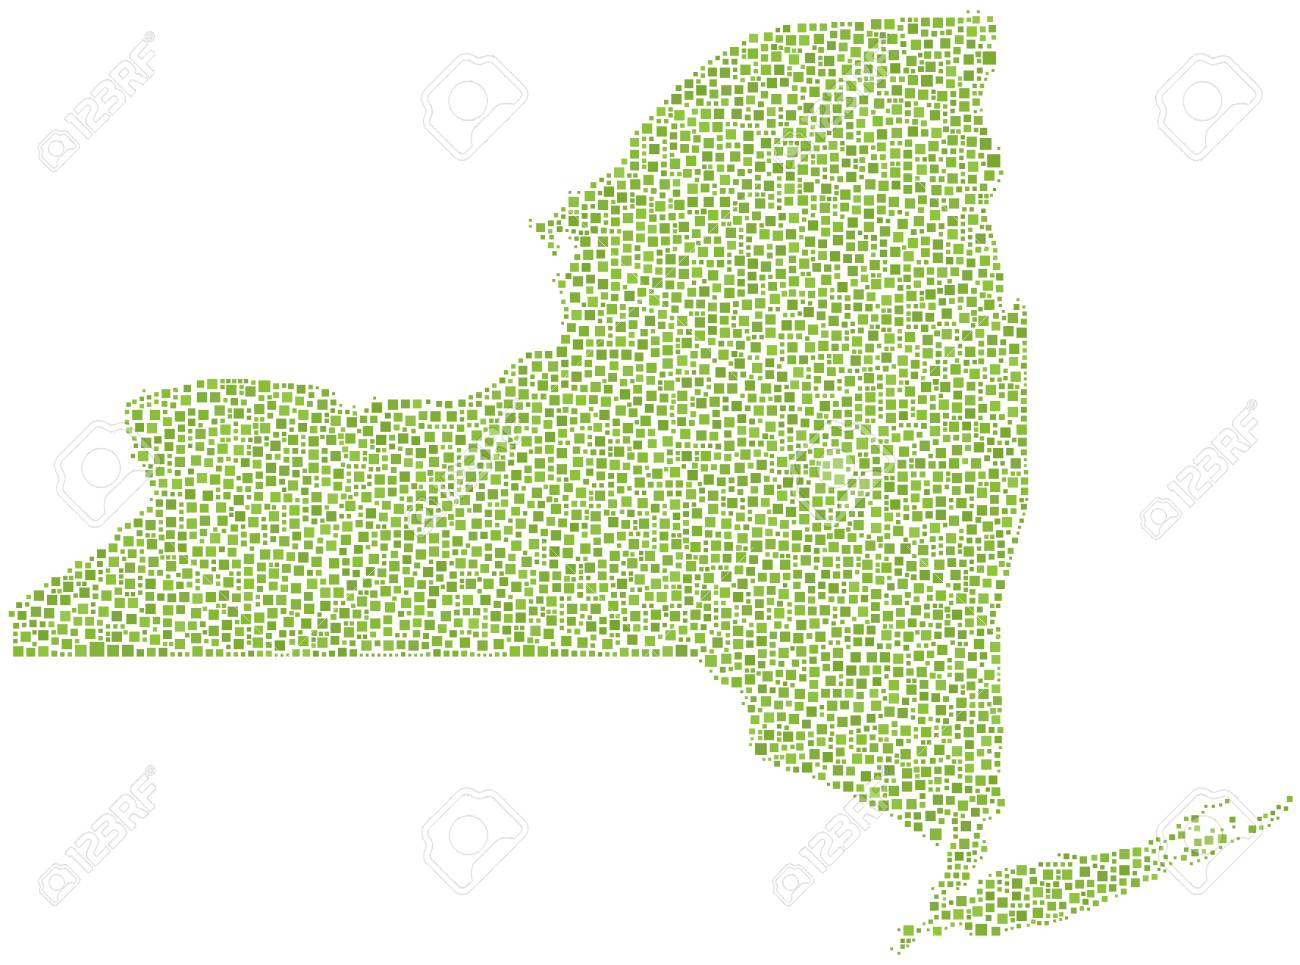 Map of New York State (USA) in a mosaic of small green squares Small Map Of Usa on satellite maps of usa, small new england main street, small printable maps, land grants usa, national capital of usa, small map with roads, small california map, united states maps usa, map from usa, road map usa, russian invasion of usa, small earth map, small new york map, small street map, national animal of usa, national library of usa, national bank of usa, compass of usa, seal of usa, presidential flag of usa,